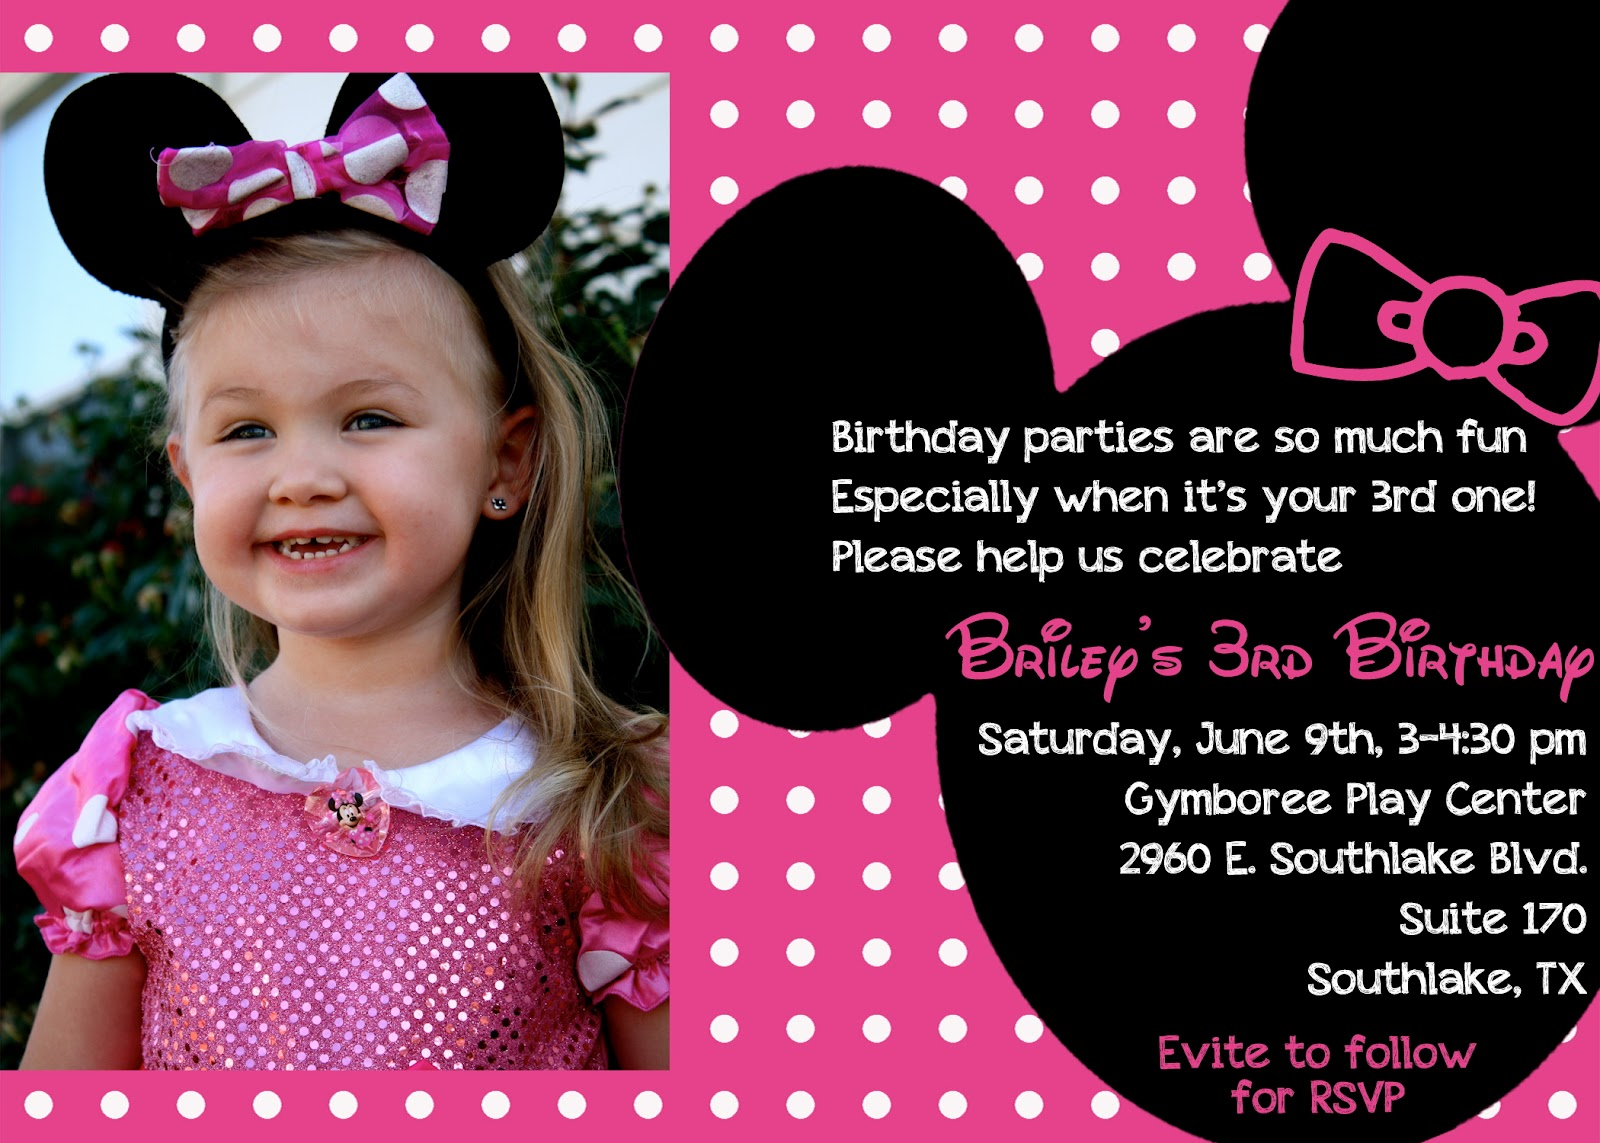 birthday invitation quotes for 3 year old ; rd-birthday-invitation-wording-to-inspire-you-how-to-create-the-Birthday-invitation-with-the-best-way-2